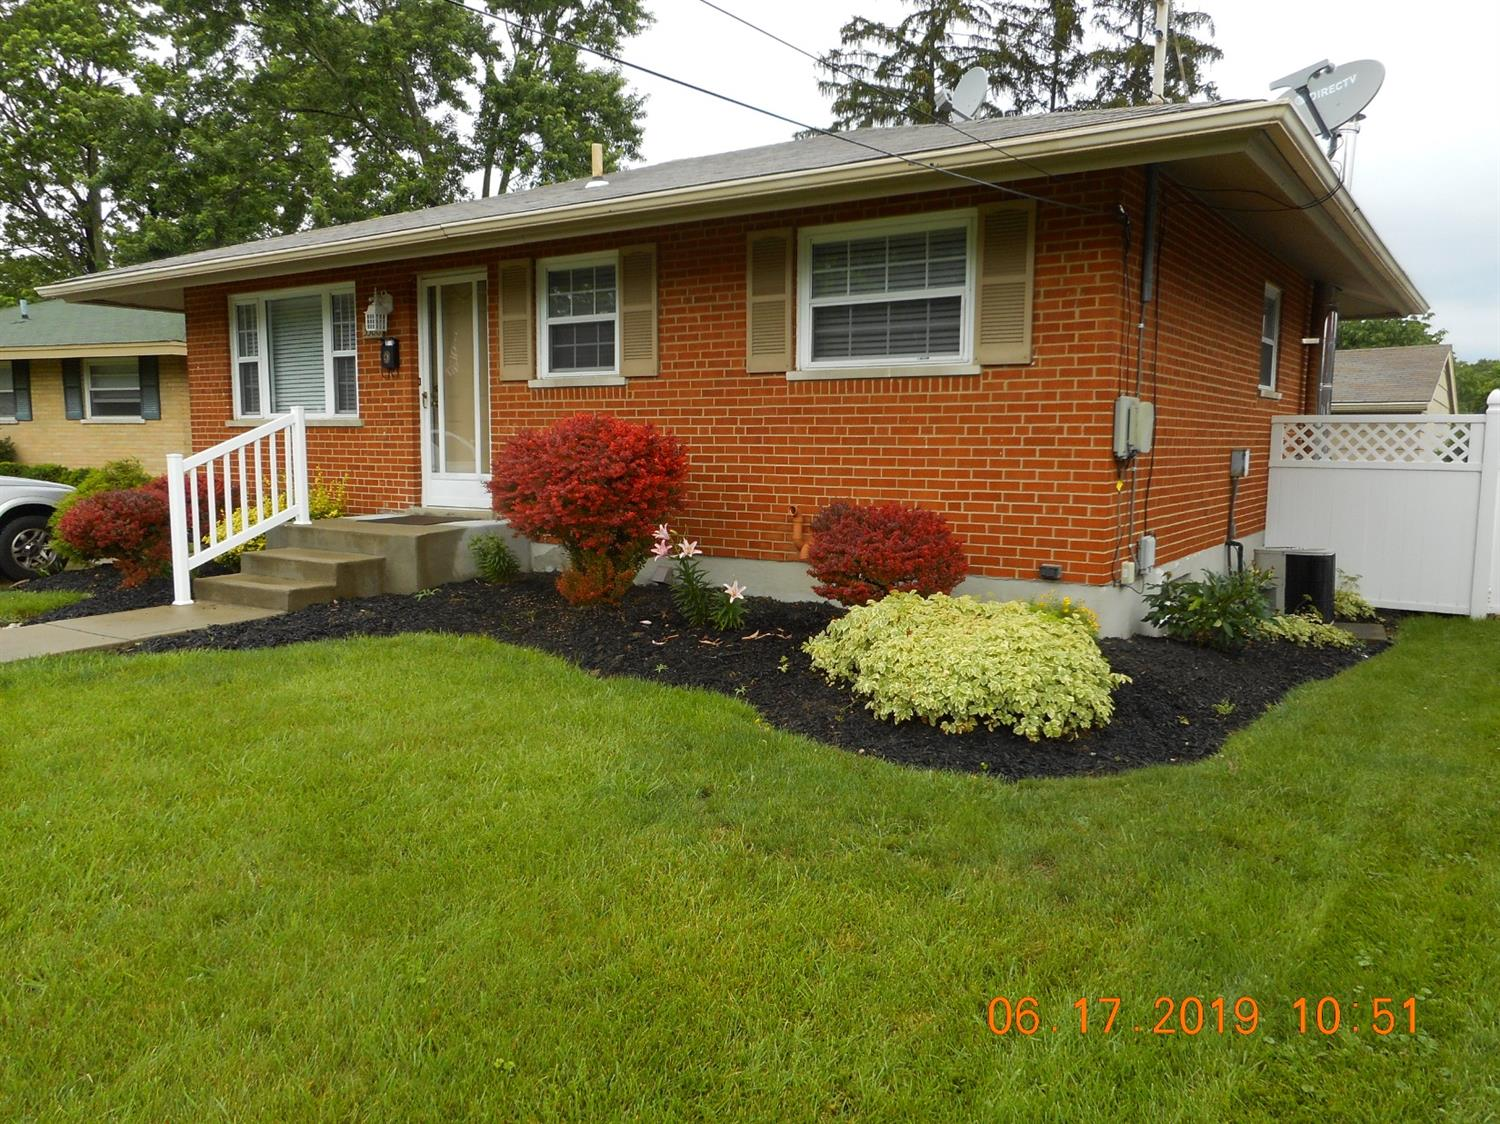 Photo 2 for 3388 Lakemeadow Ct White Oak, OH 45239